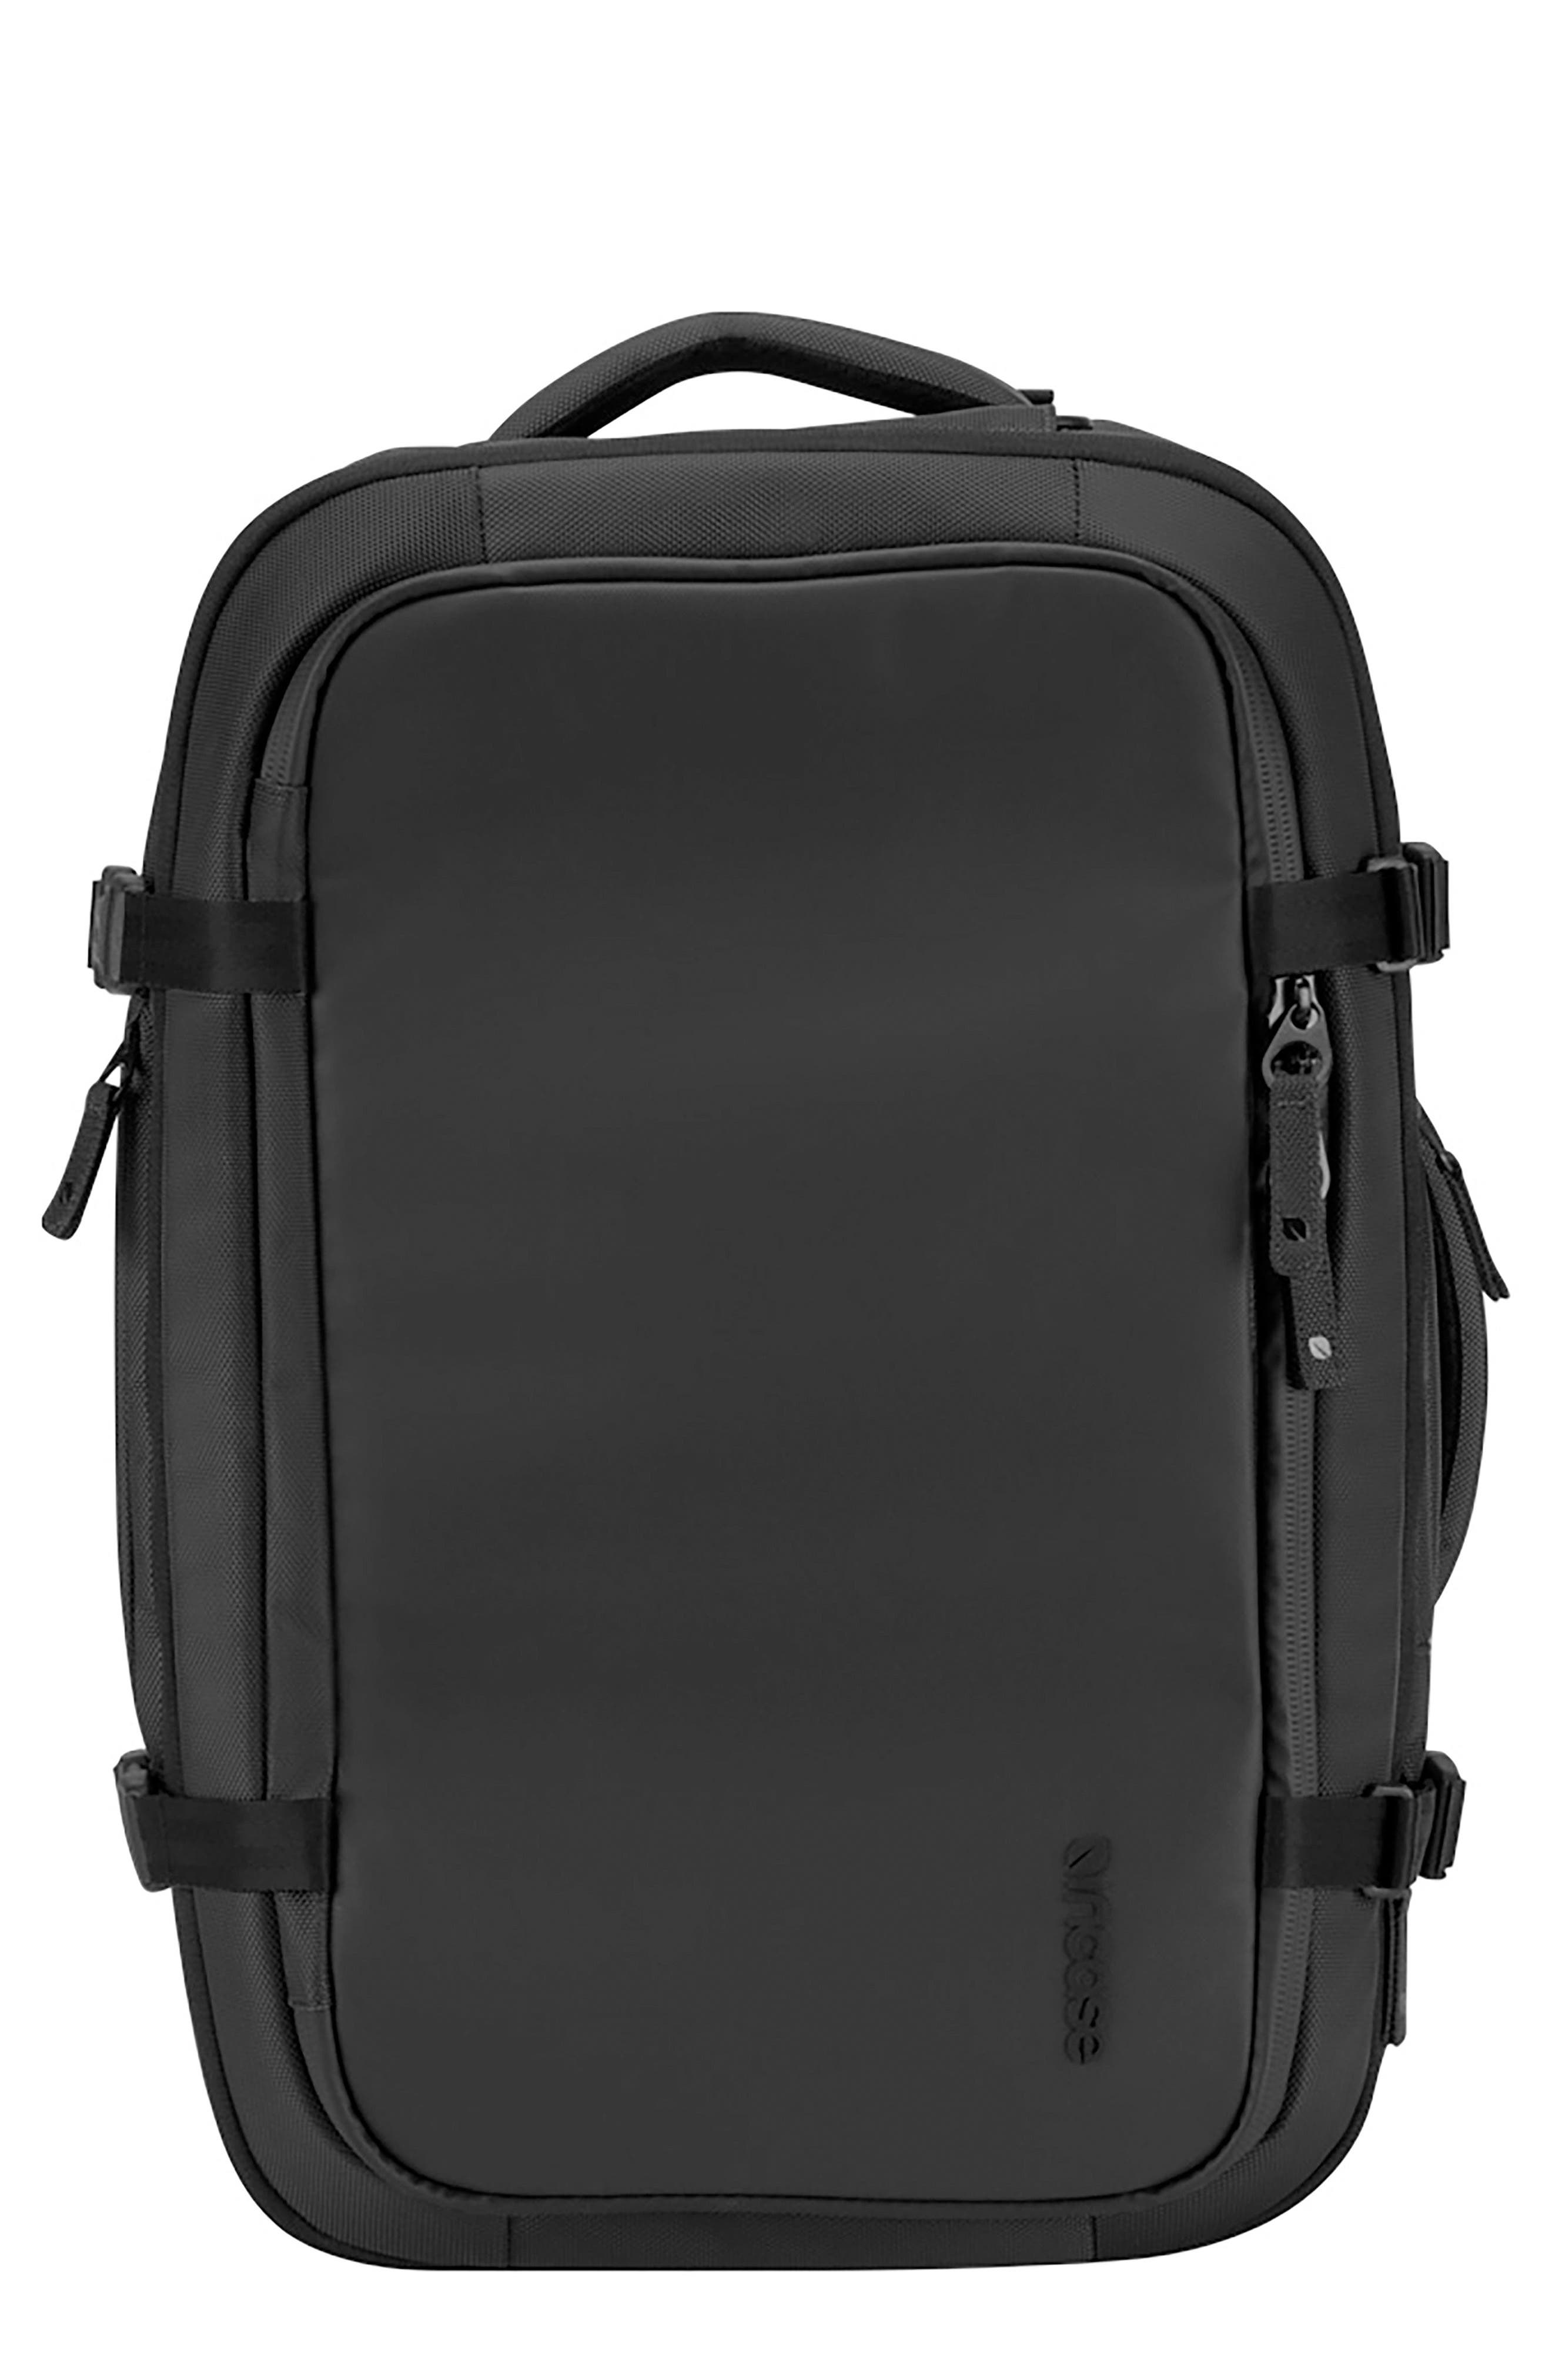 TRACTO Convertible Backpack,                         Main,                         color,